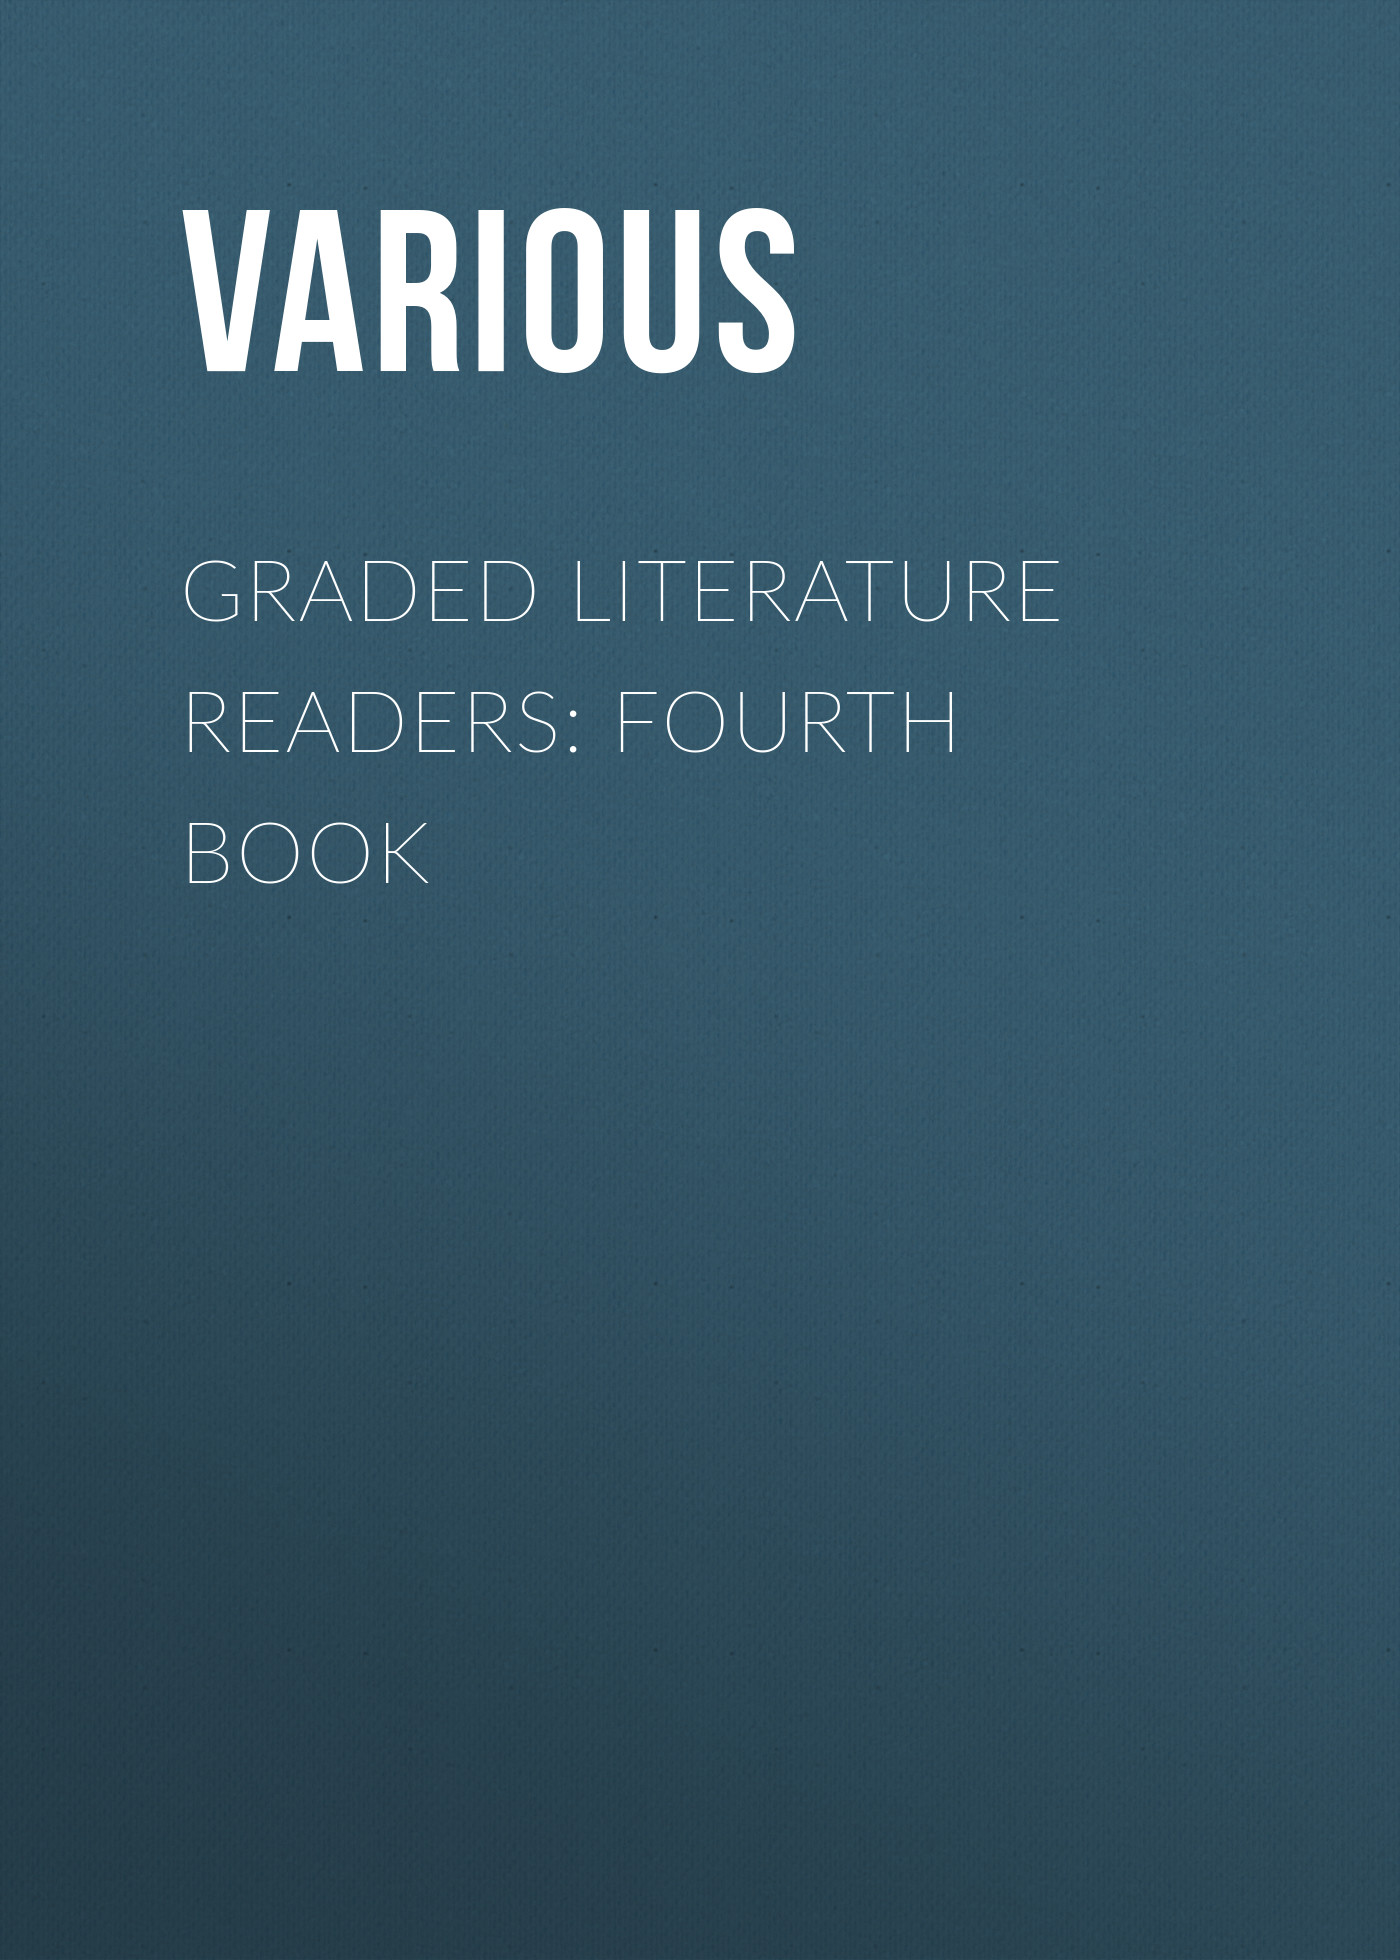 цена на Various Graded Literature Readers: Fourth Book